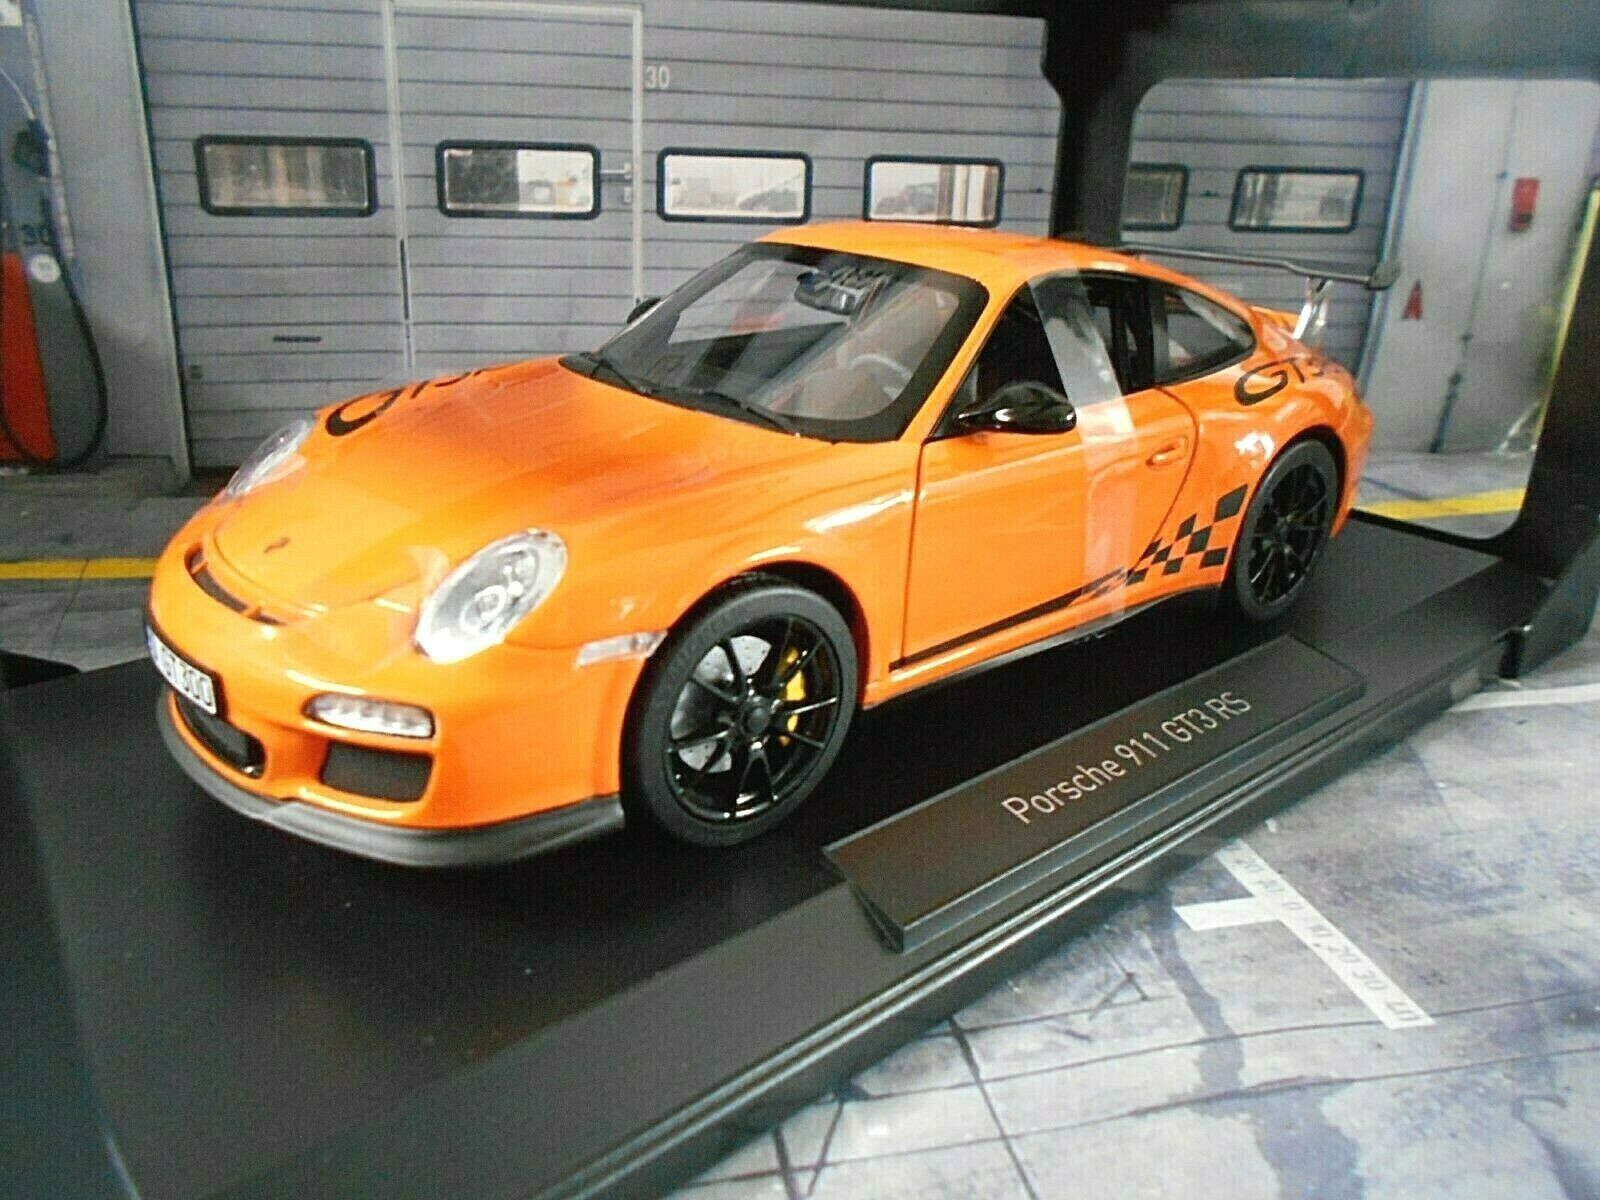 PORSCHE 911 997 GT3 RS Coupe voiturerera 2009 Orange 187562 Norev NEU 1 18